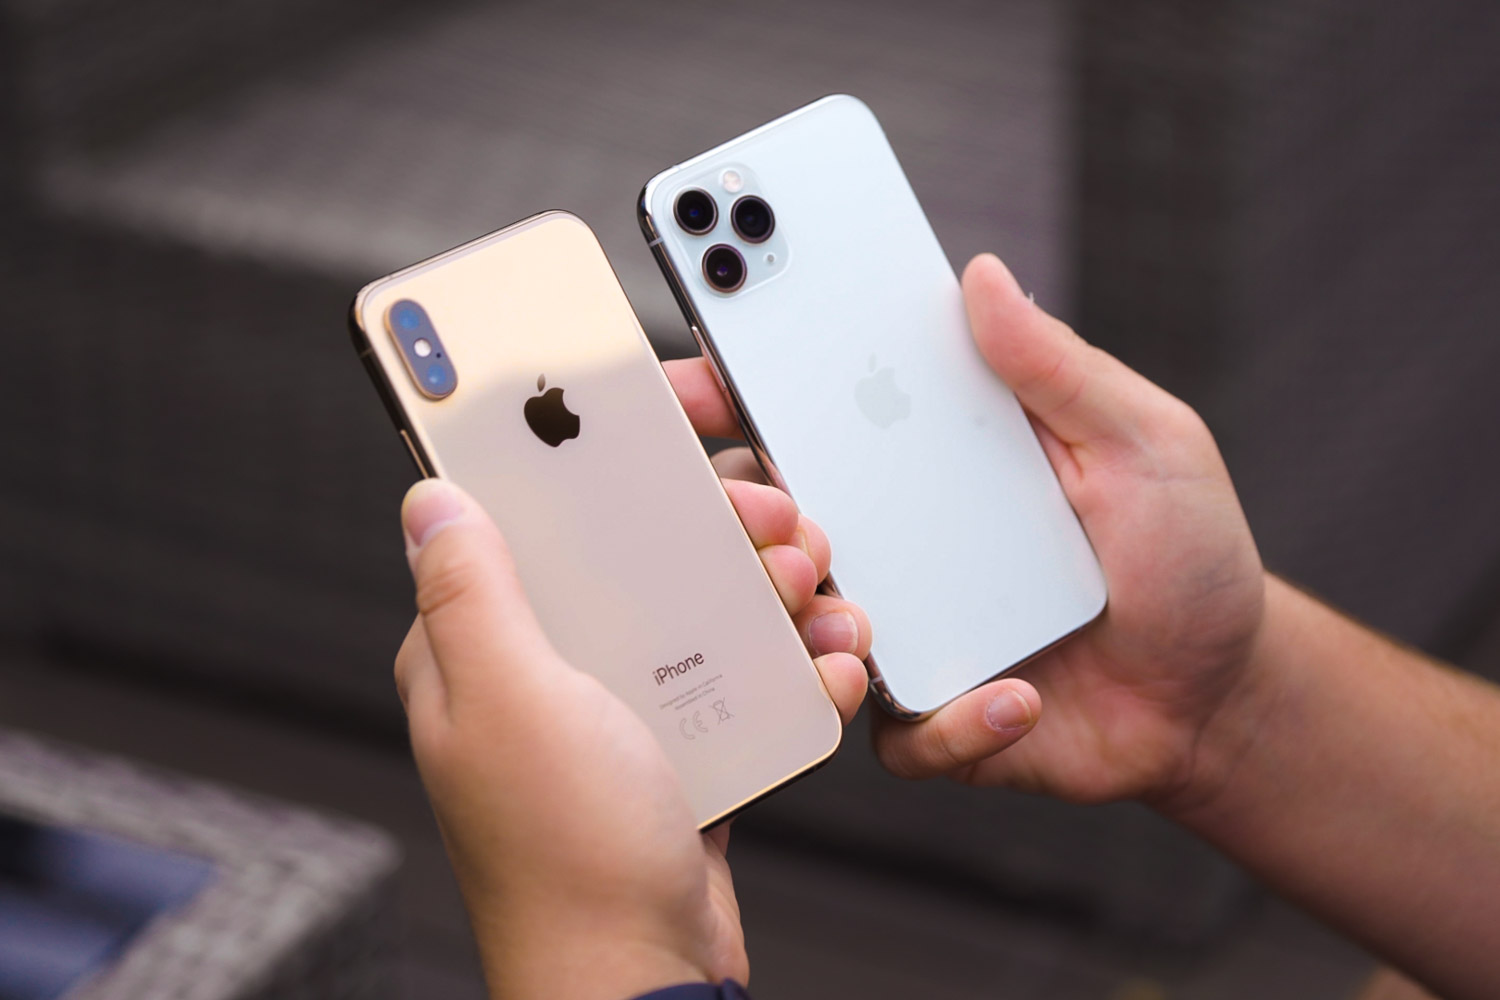 iphone 11 pro vs iphone xs aparat